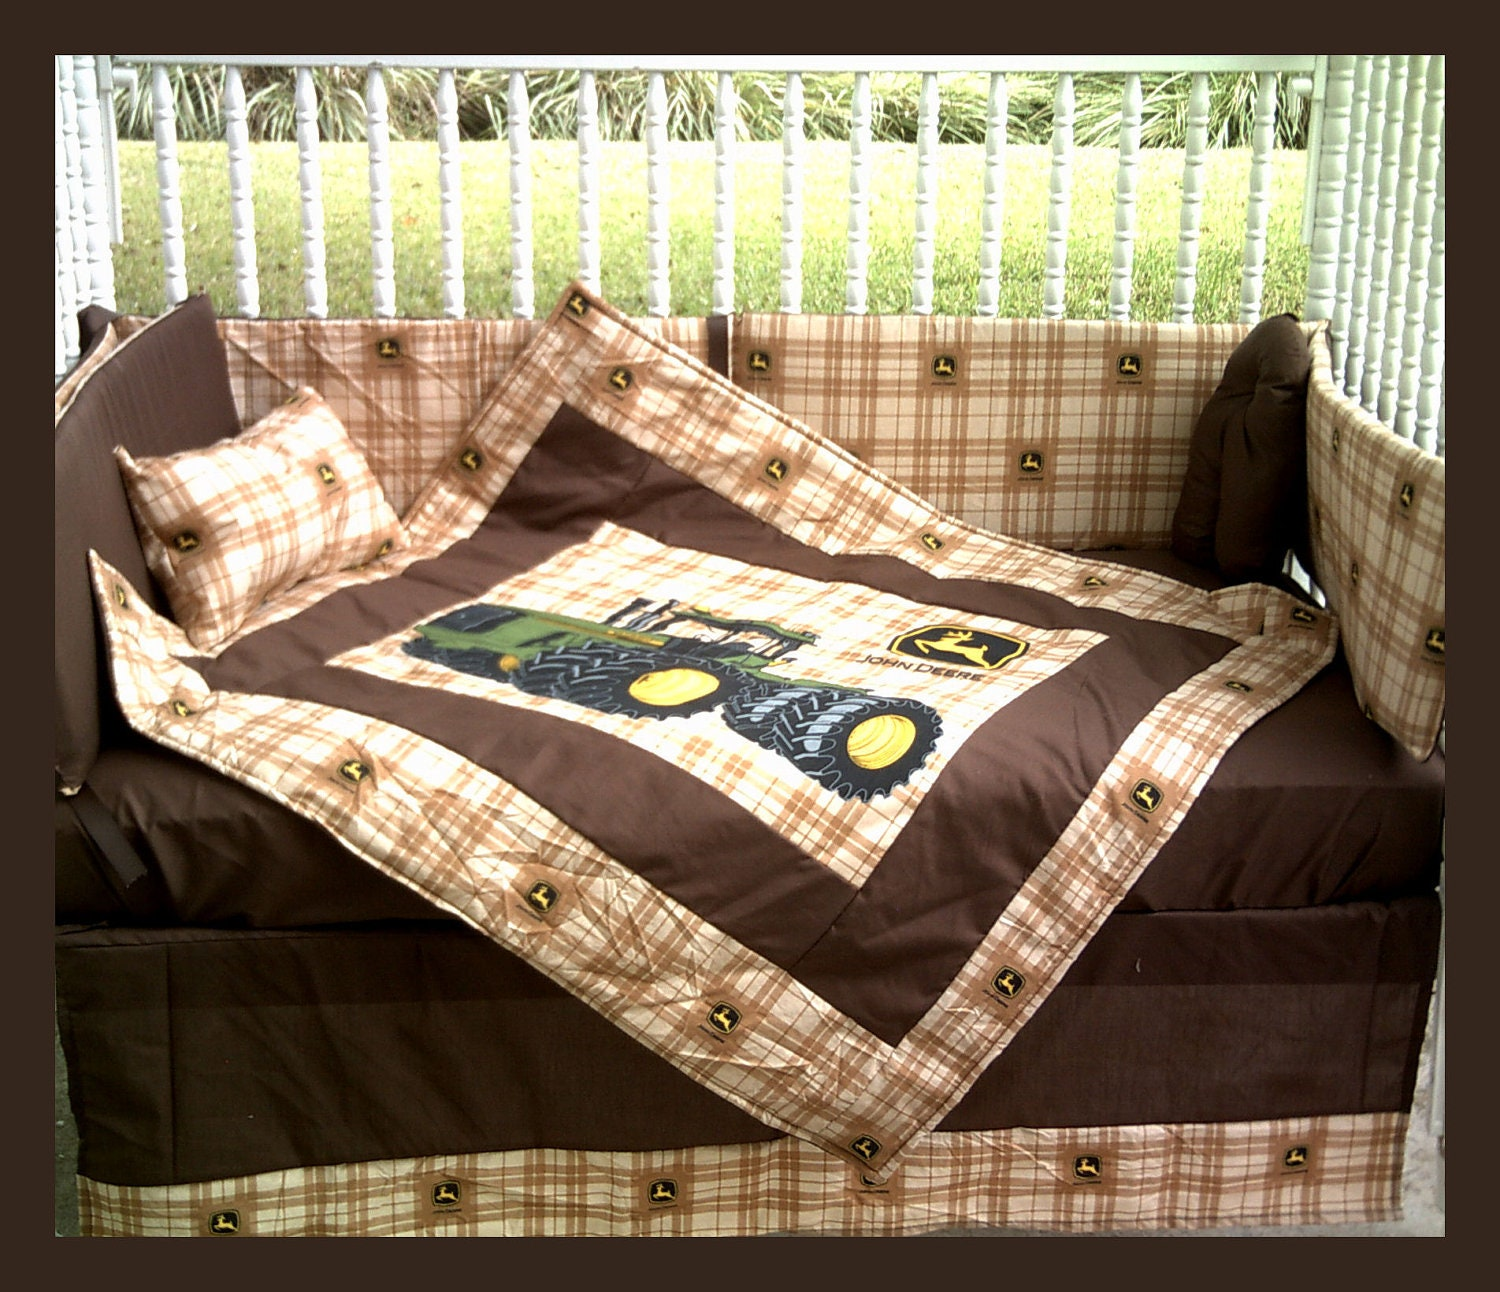 John Deere Crib Sets For Boys : New john deere baby crib bedding set in brown plaid